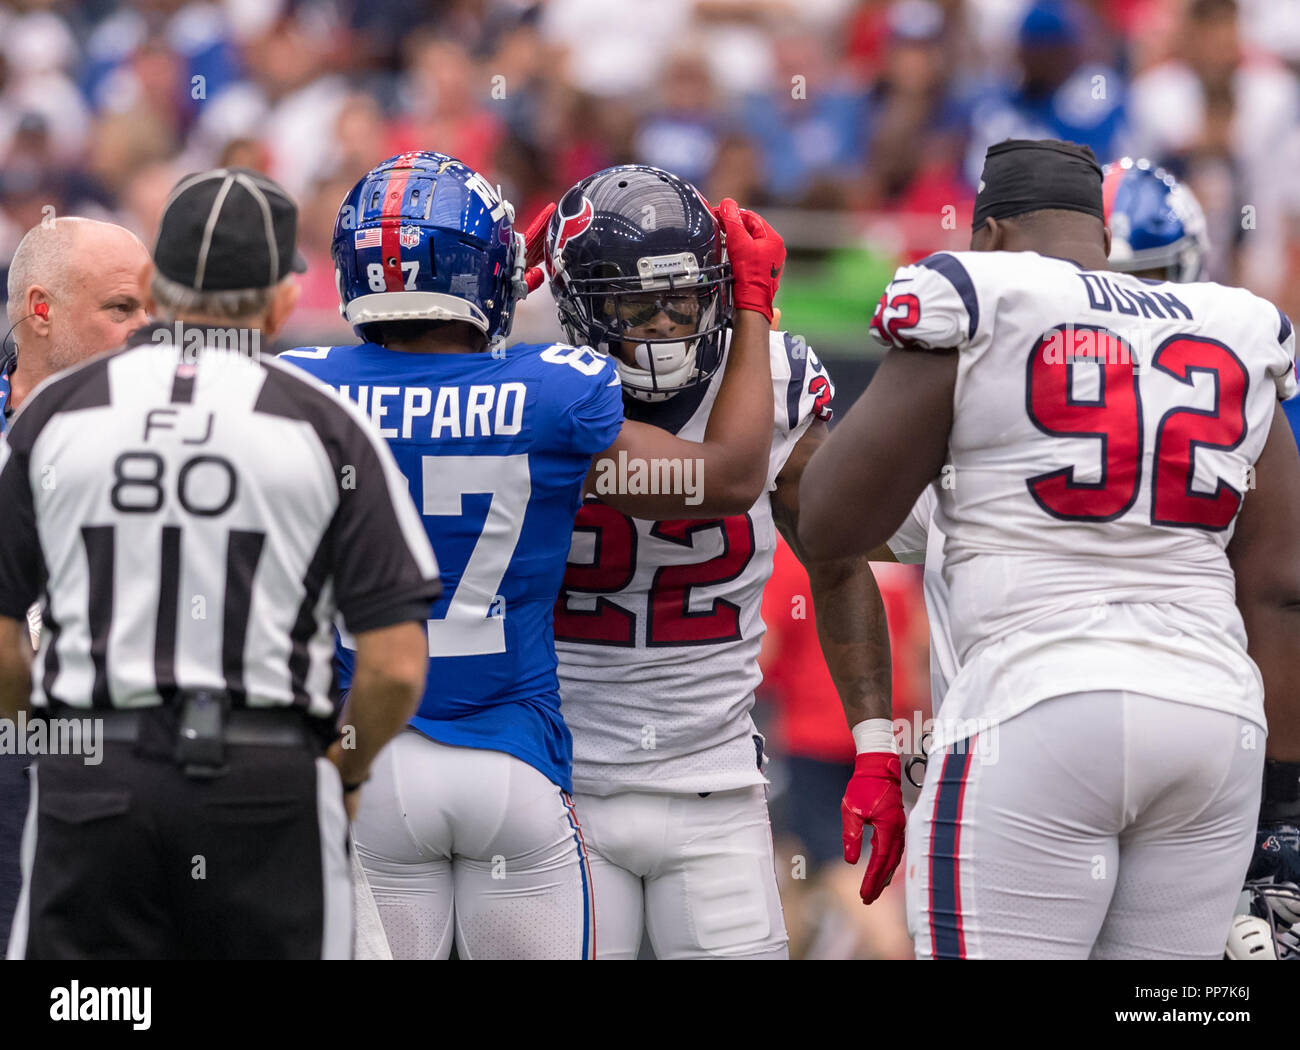 New York Giants wide receiver Sterling Shepard (87) checks on Houston Texans defensive back Aaron Colvin (22) after an injury time out for Aaron Colvin returns later in the game in an NFL game between the New York Giants and the Houston Texans on September 23, 2018 at the NRG Stadium in Houston, Texas. The New York Giants beat the Houston Texans final 27-22 - Stock Image